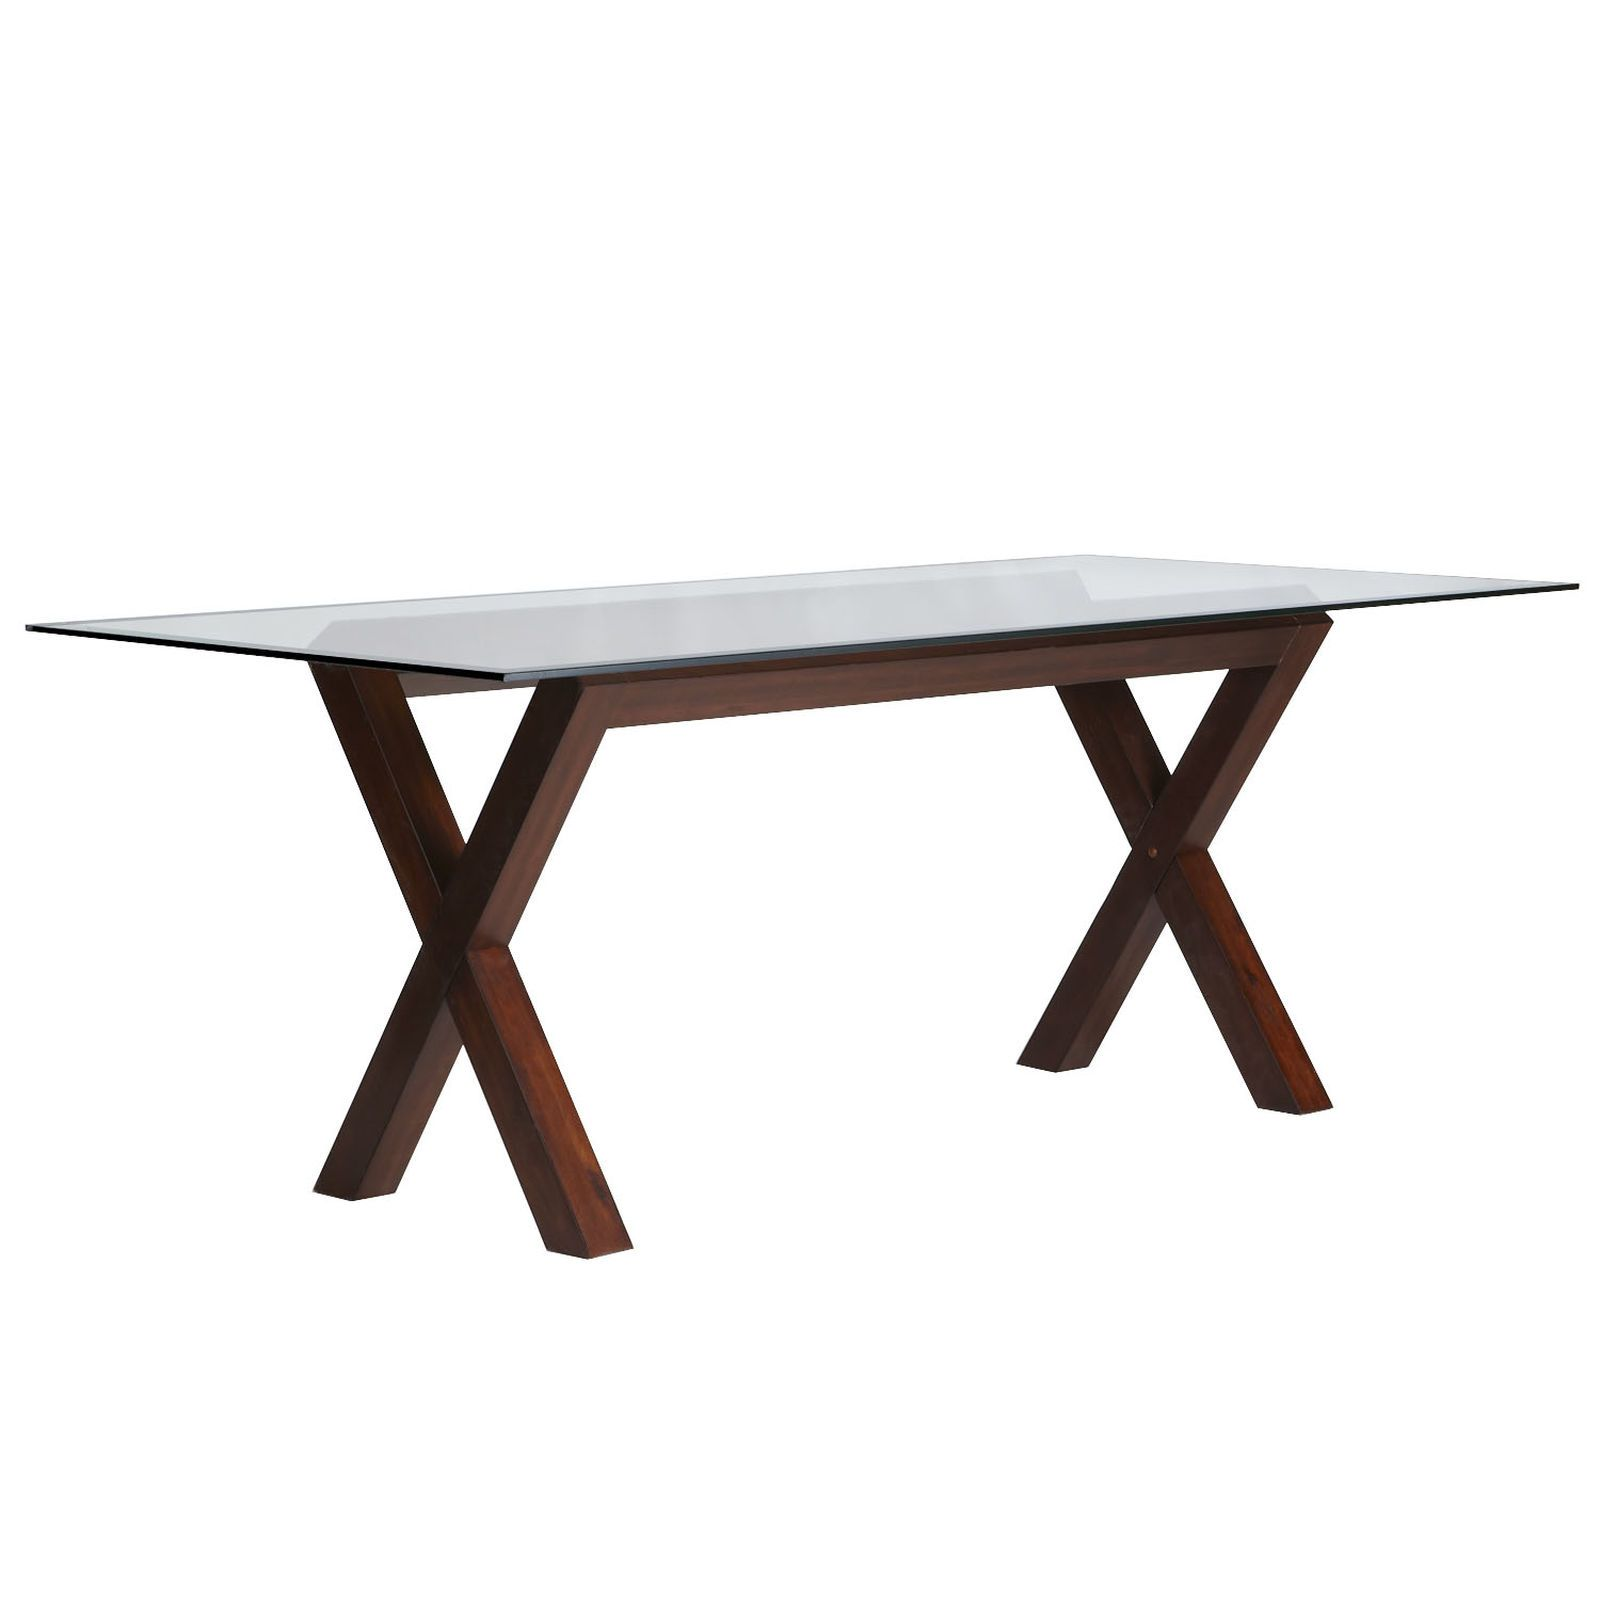 Bennett dining table base mahogany brown pier imports table